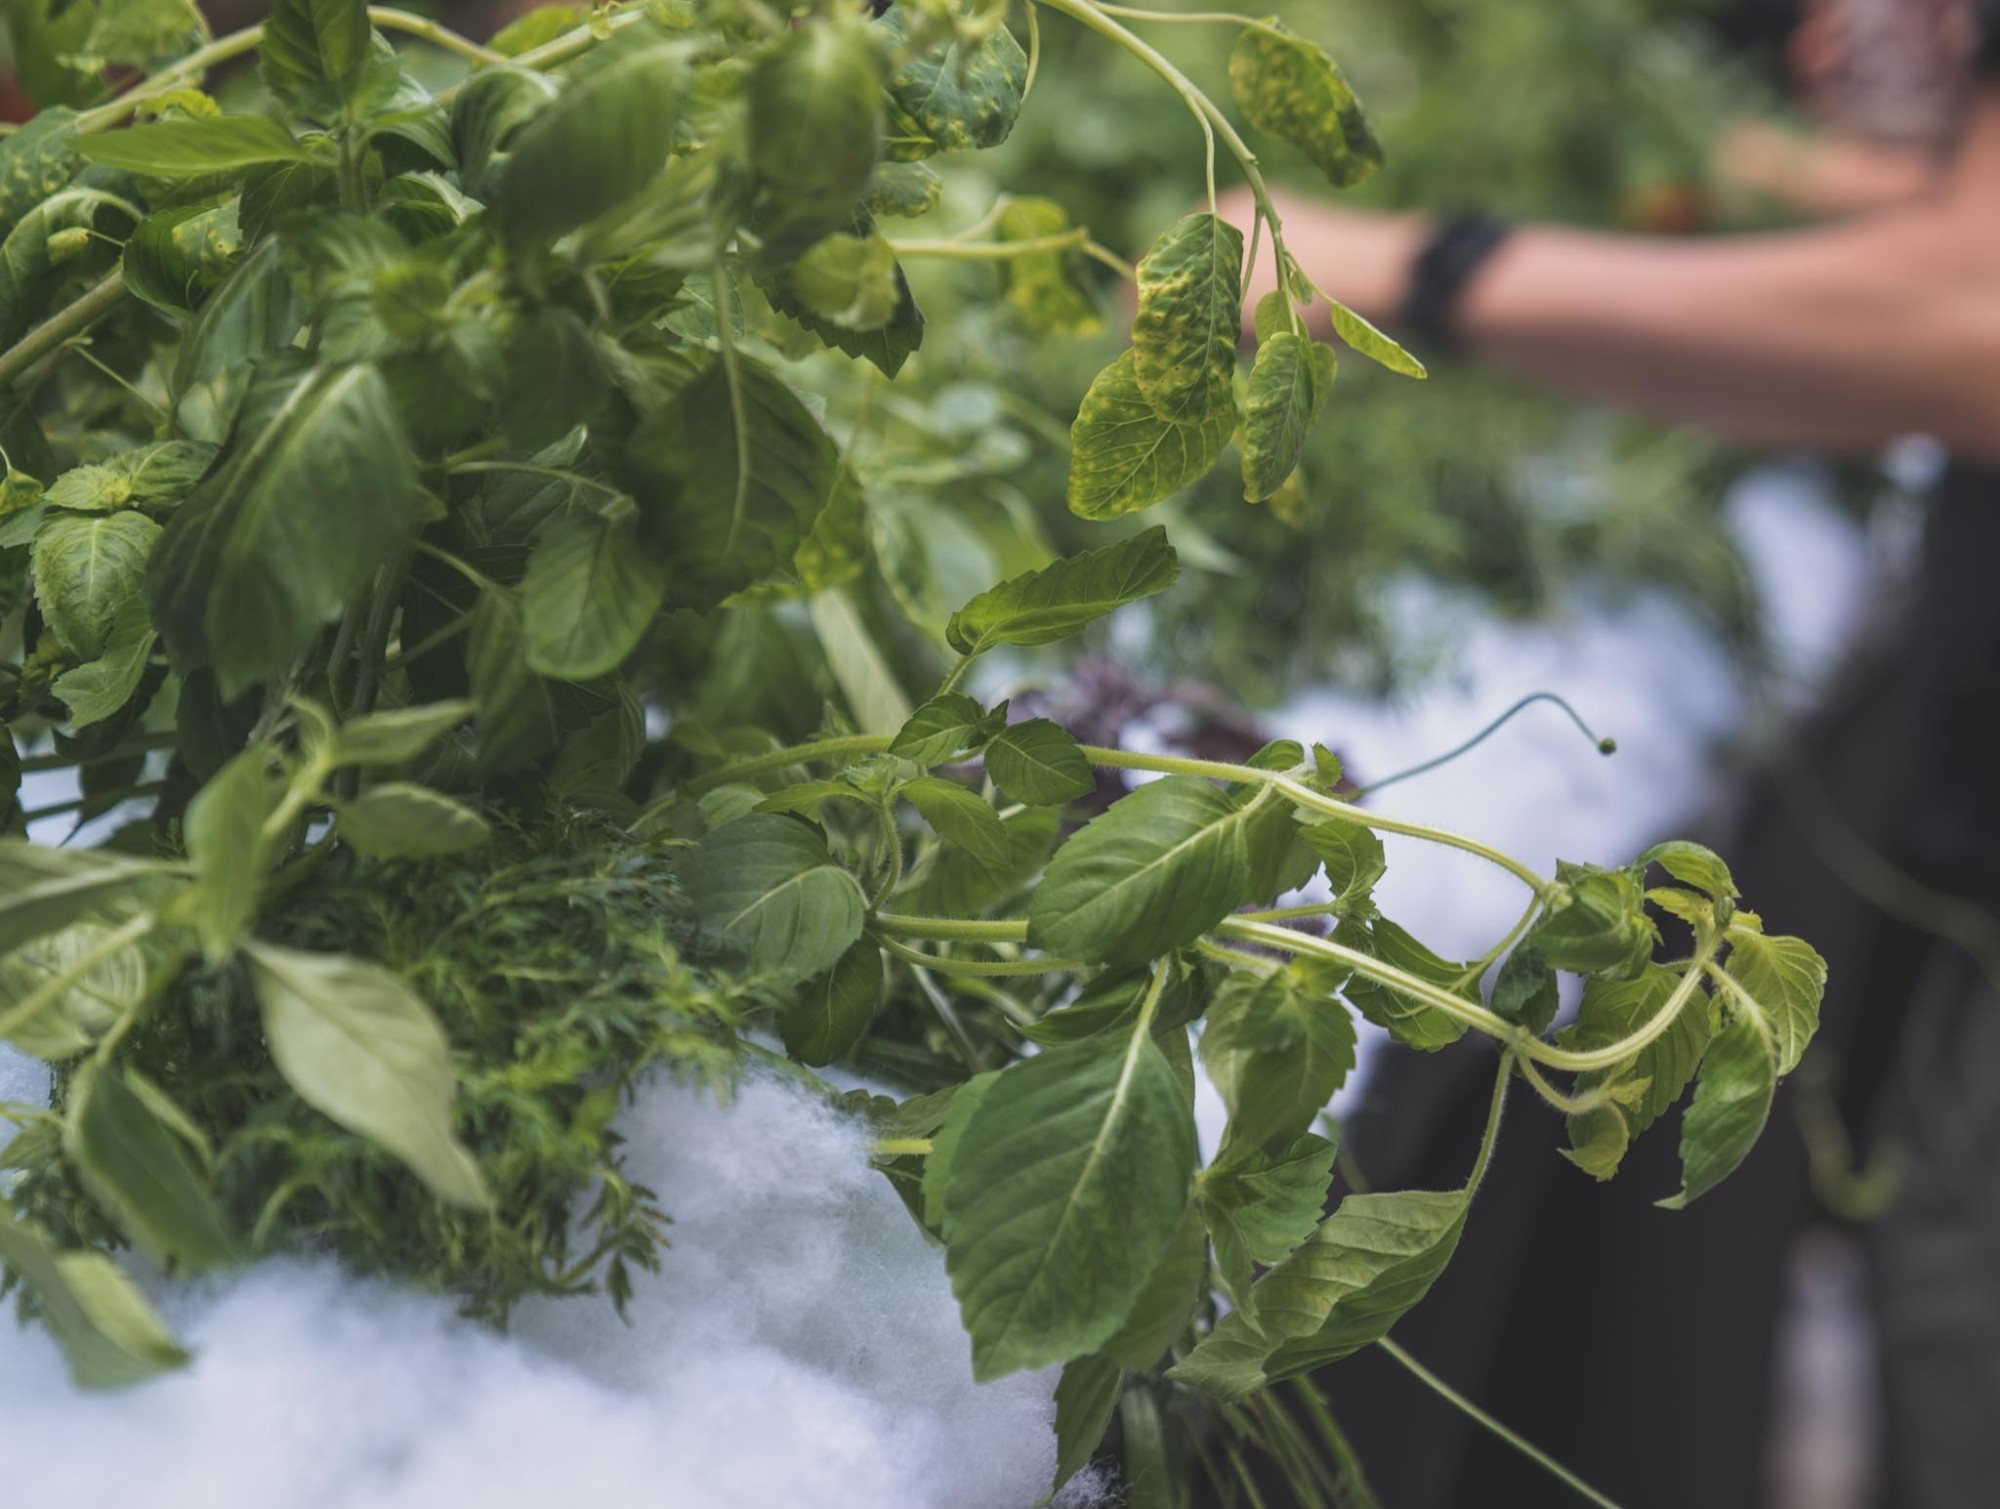 Our live plants give off delicious aromas as they are cut and served.